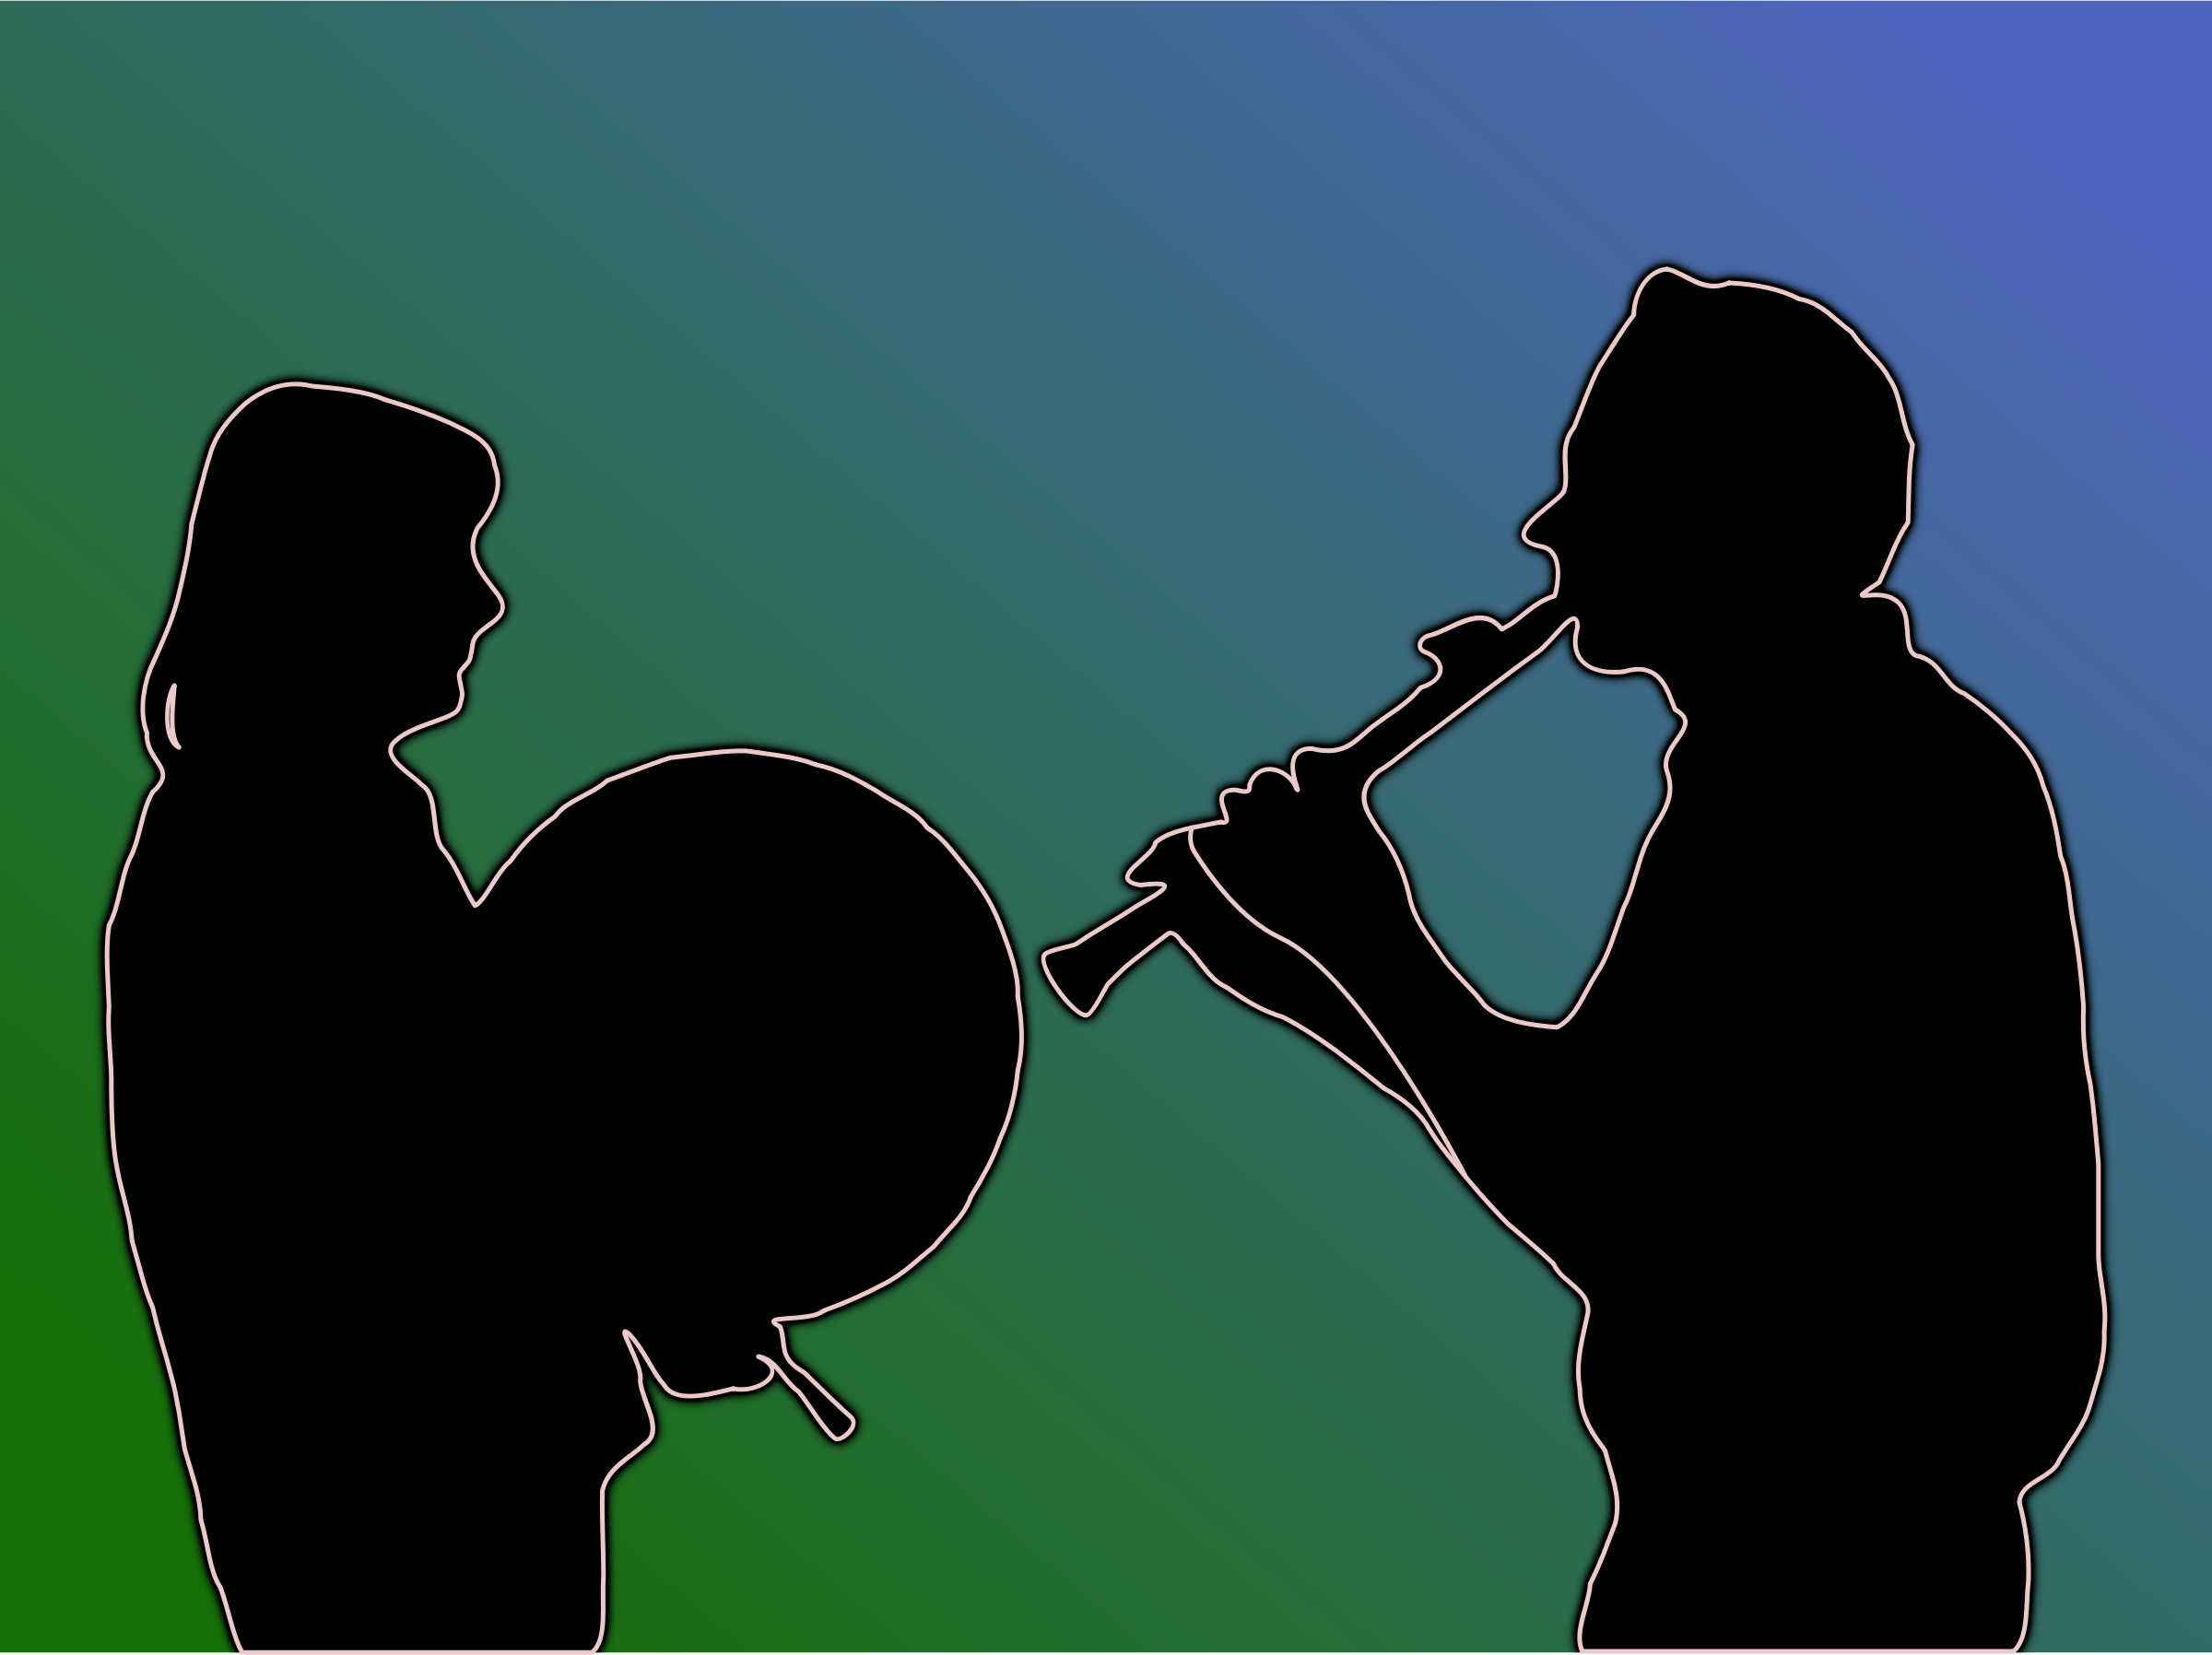 Two Folk Musicians by Greg.M